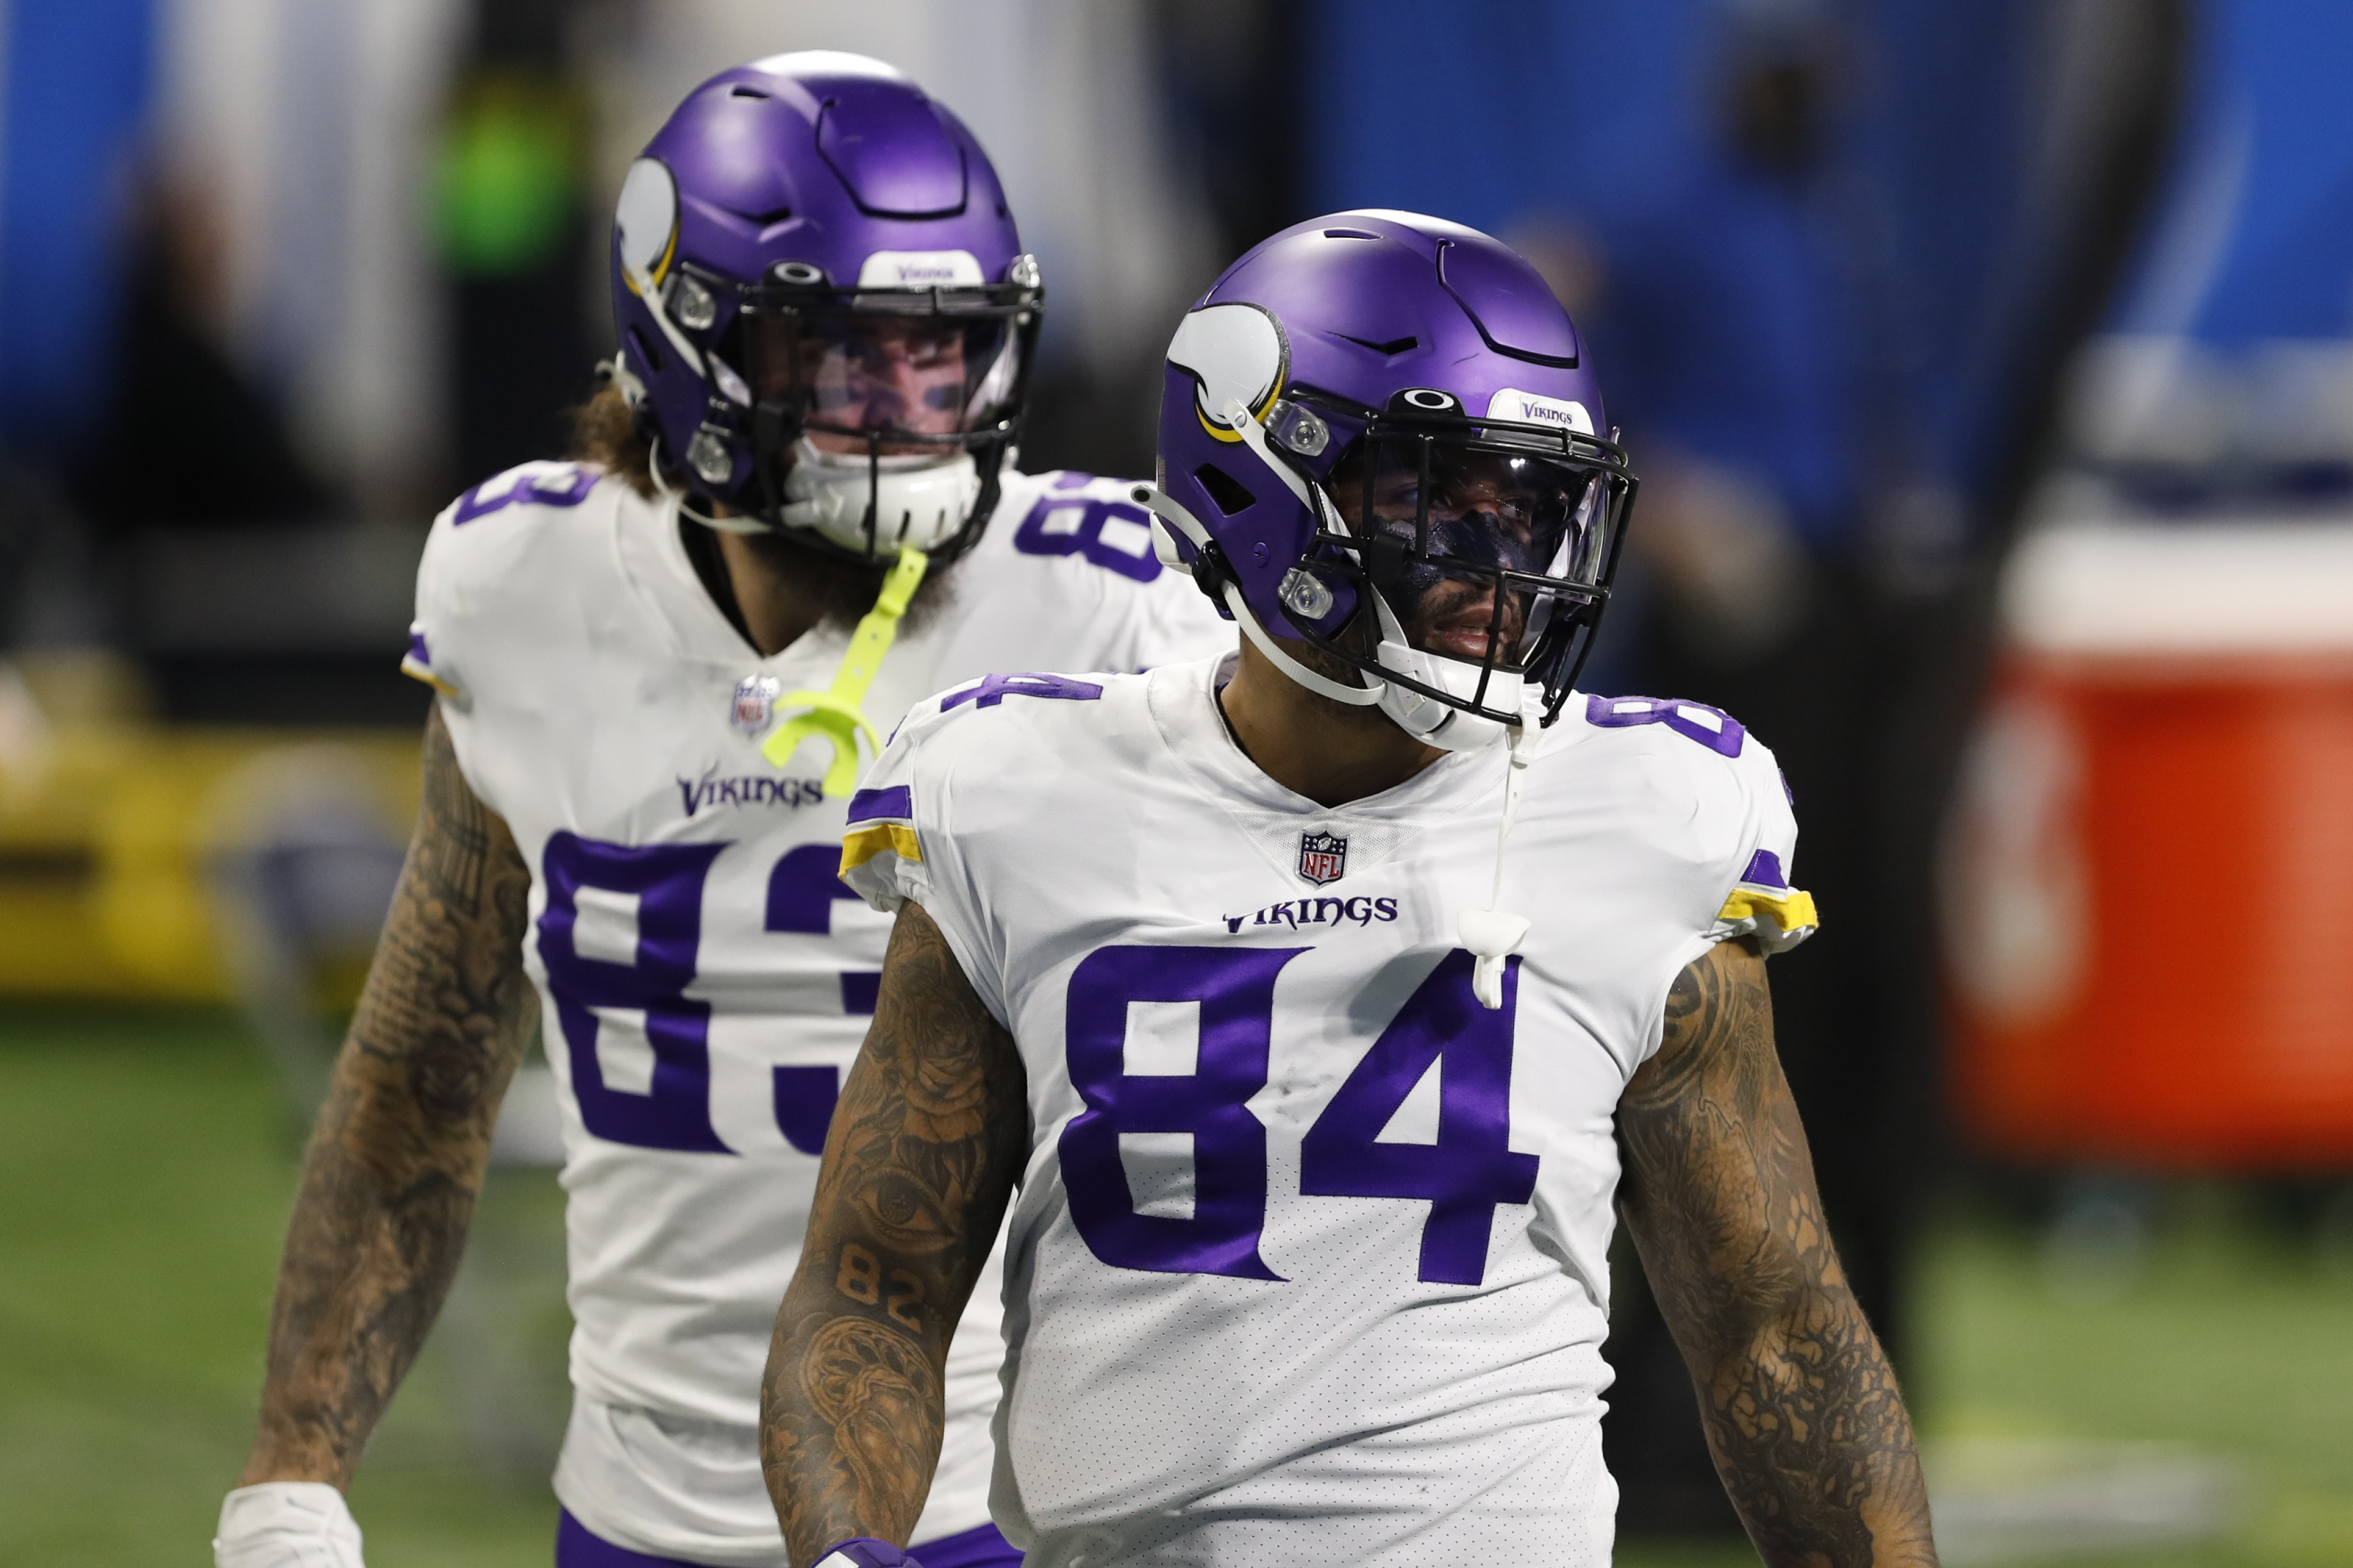 Should the Vikings add another tight end in the 2021 NFL Draft?